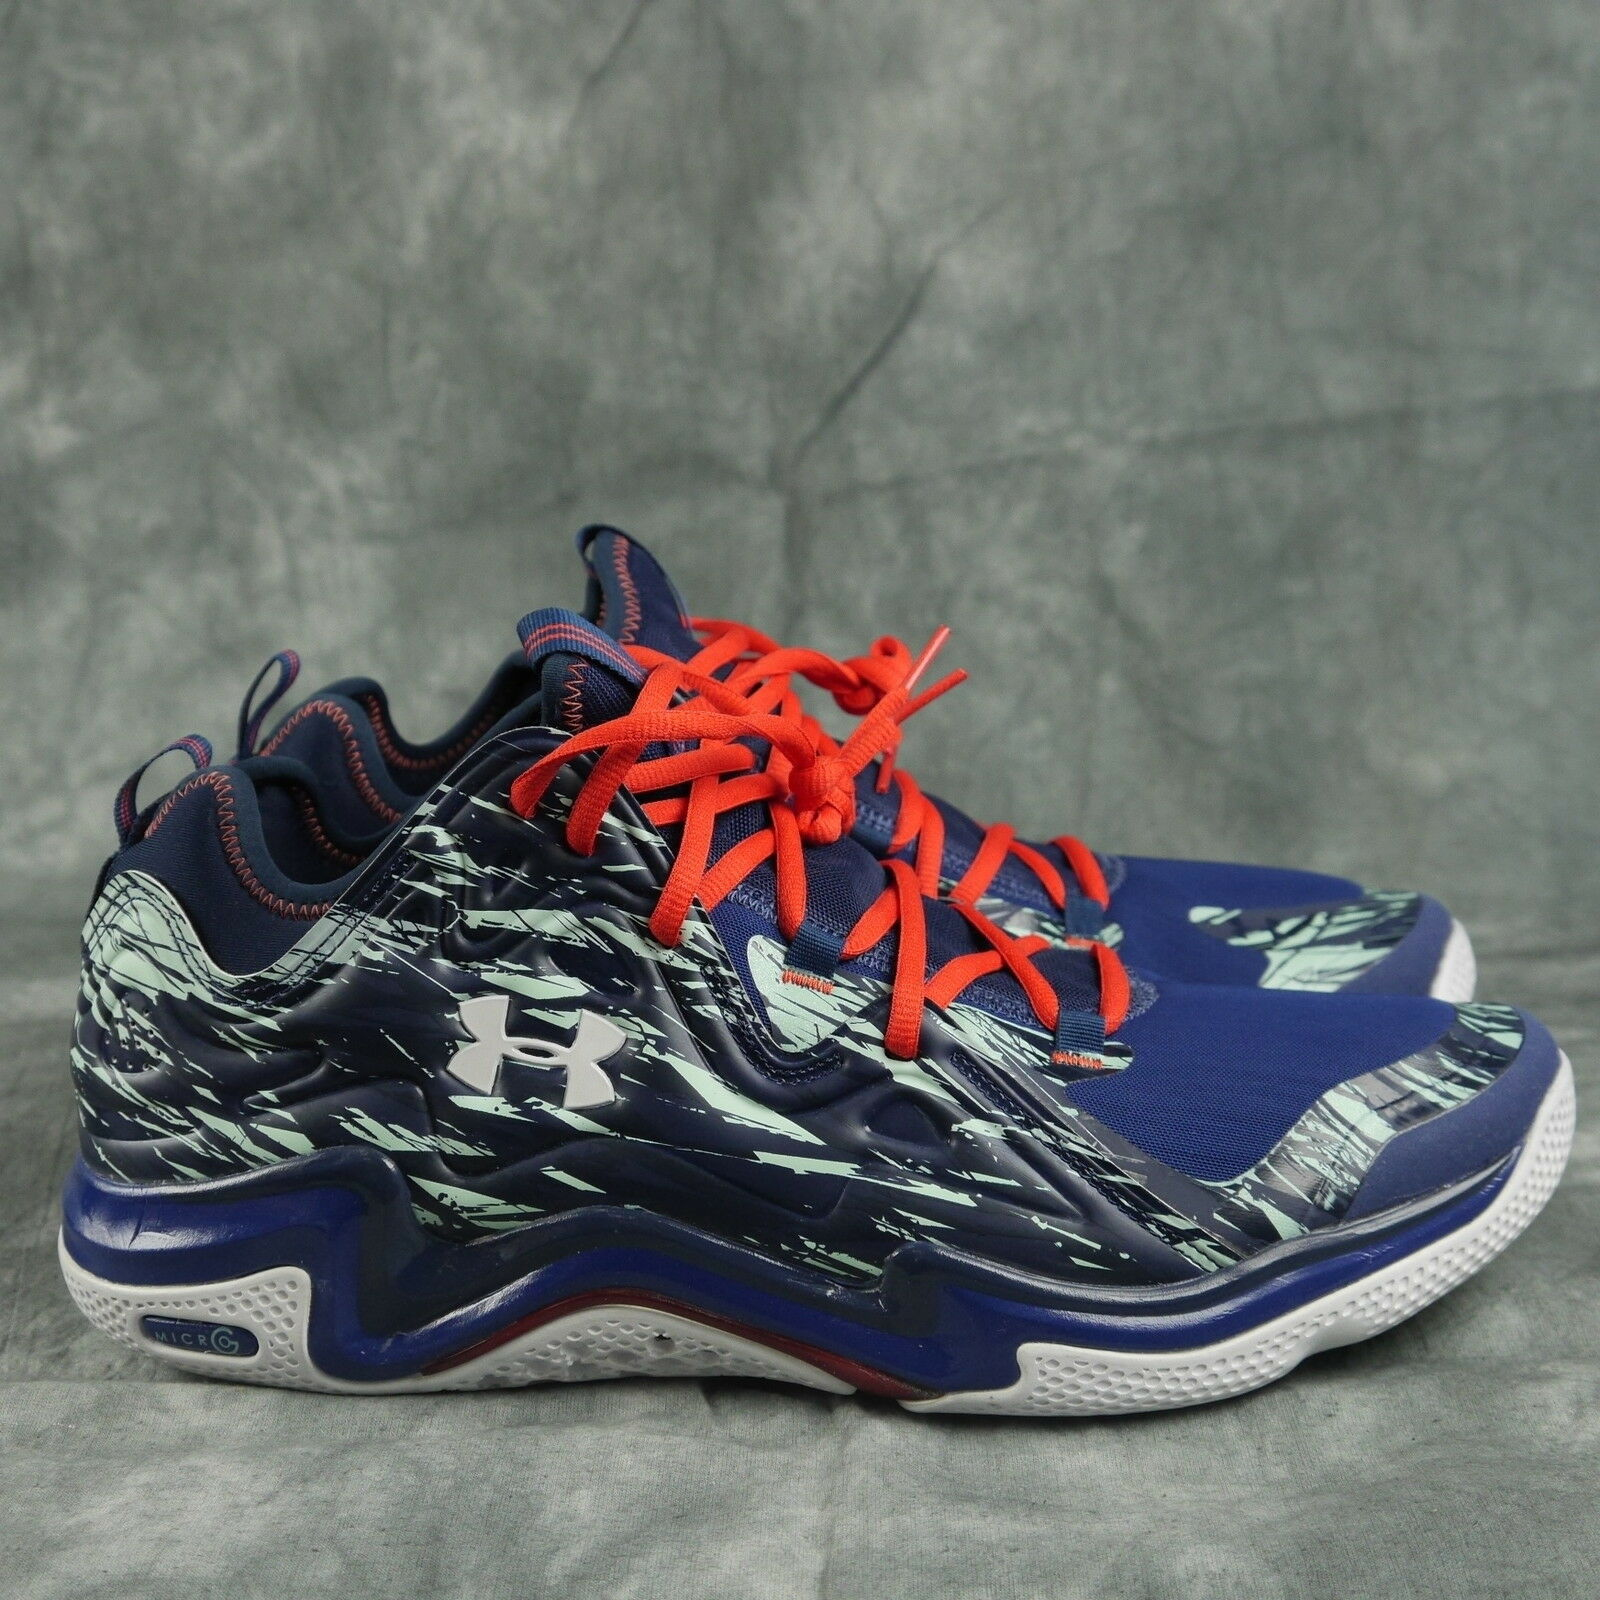 Under Armour 1248416 404 TB Micro G Charge Volt Low Basketball Shoes Uomo 14 ANB